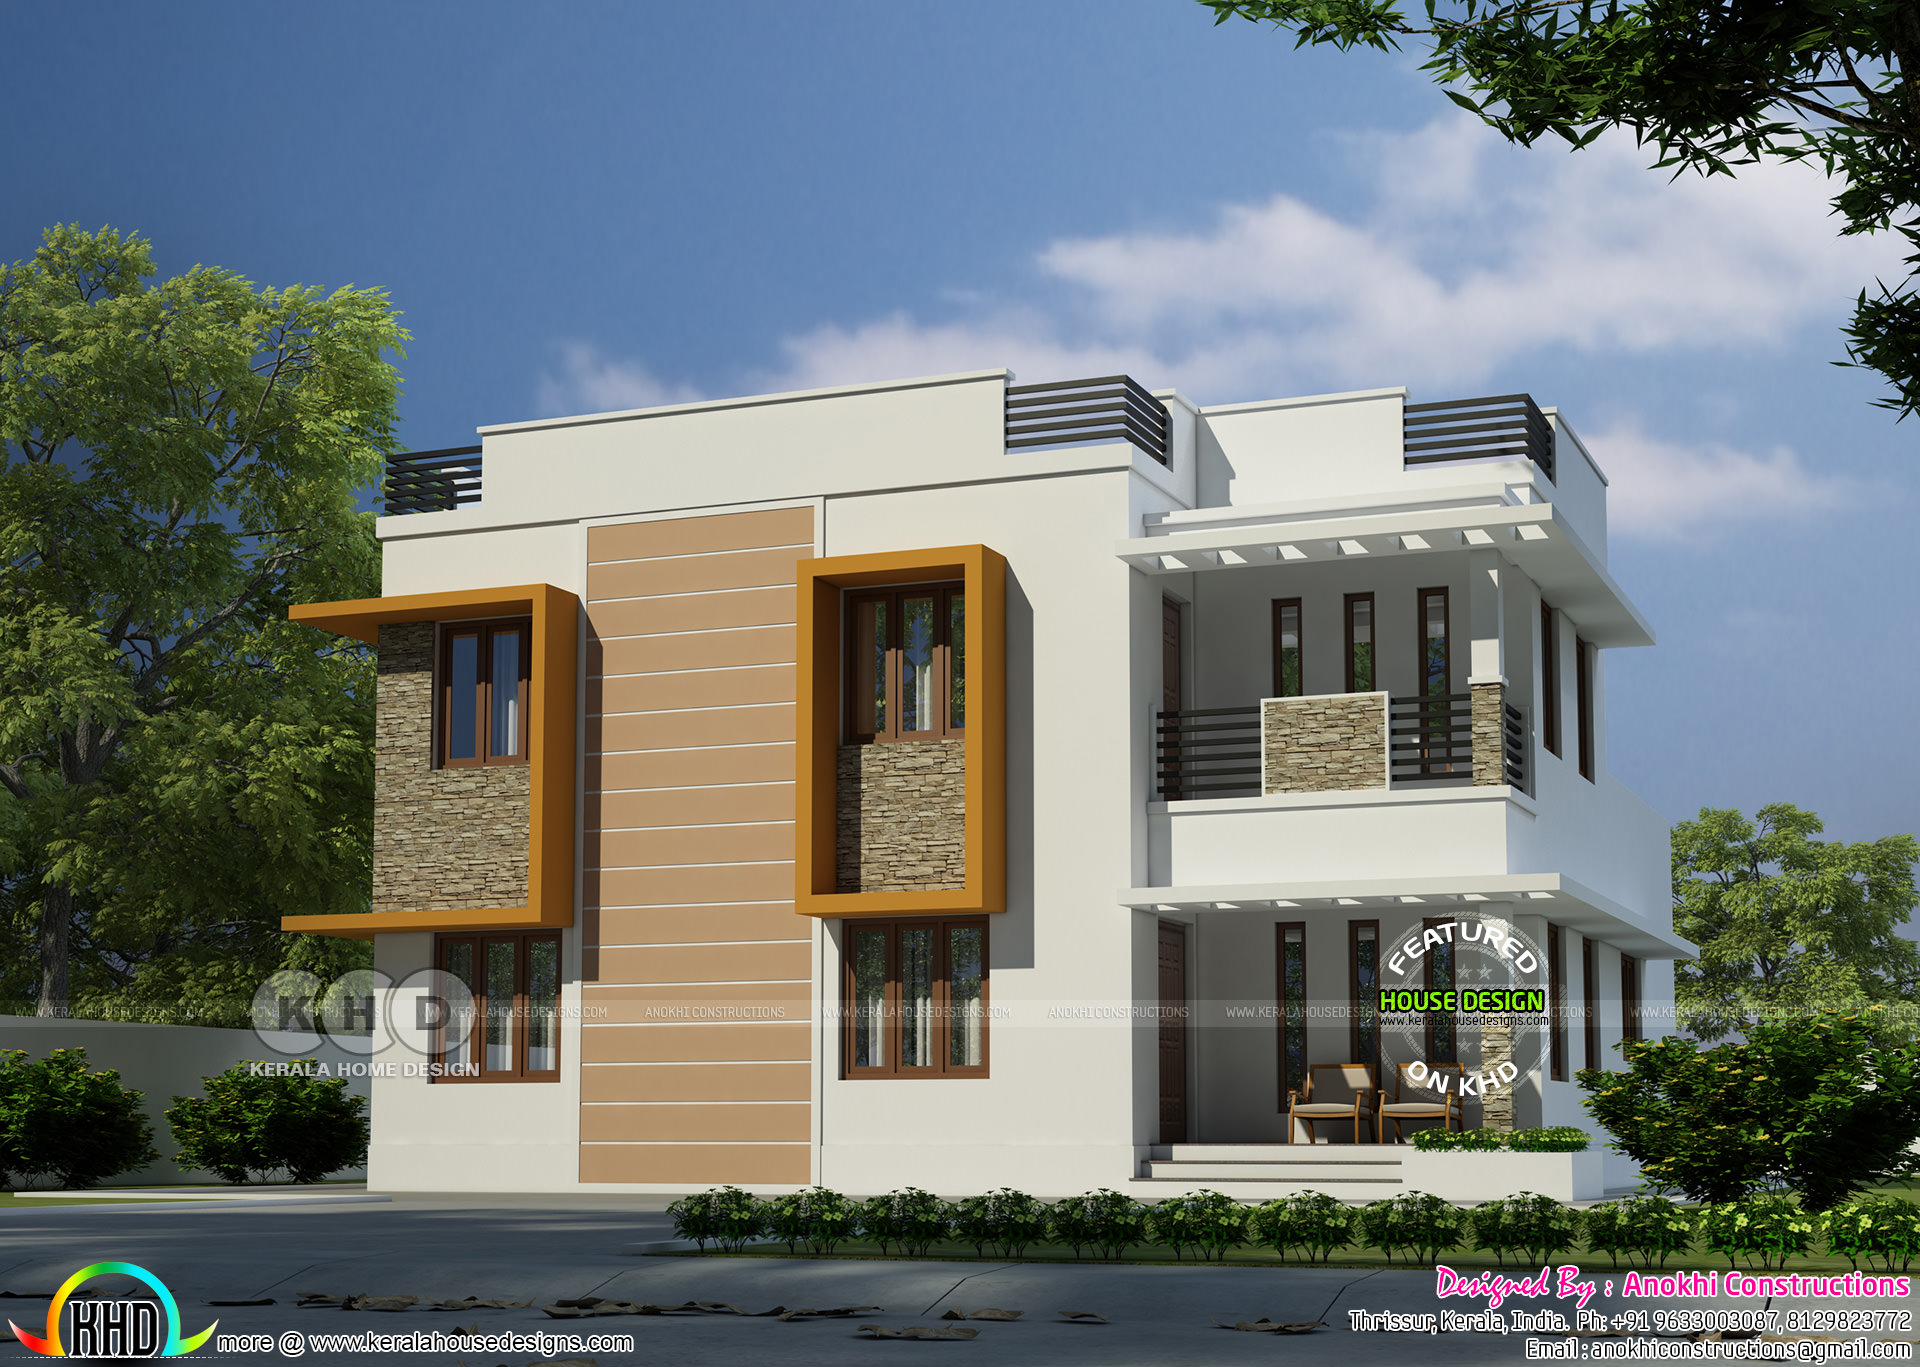 32 5 lakhs cost estimated modern home kerala home for House plans with estimated cost to build in kerala